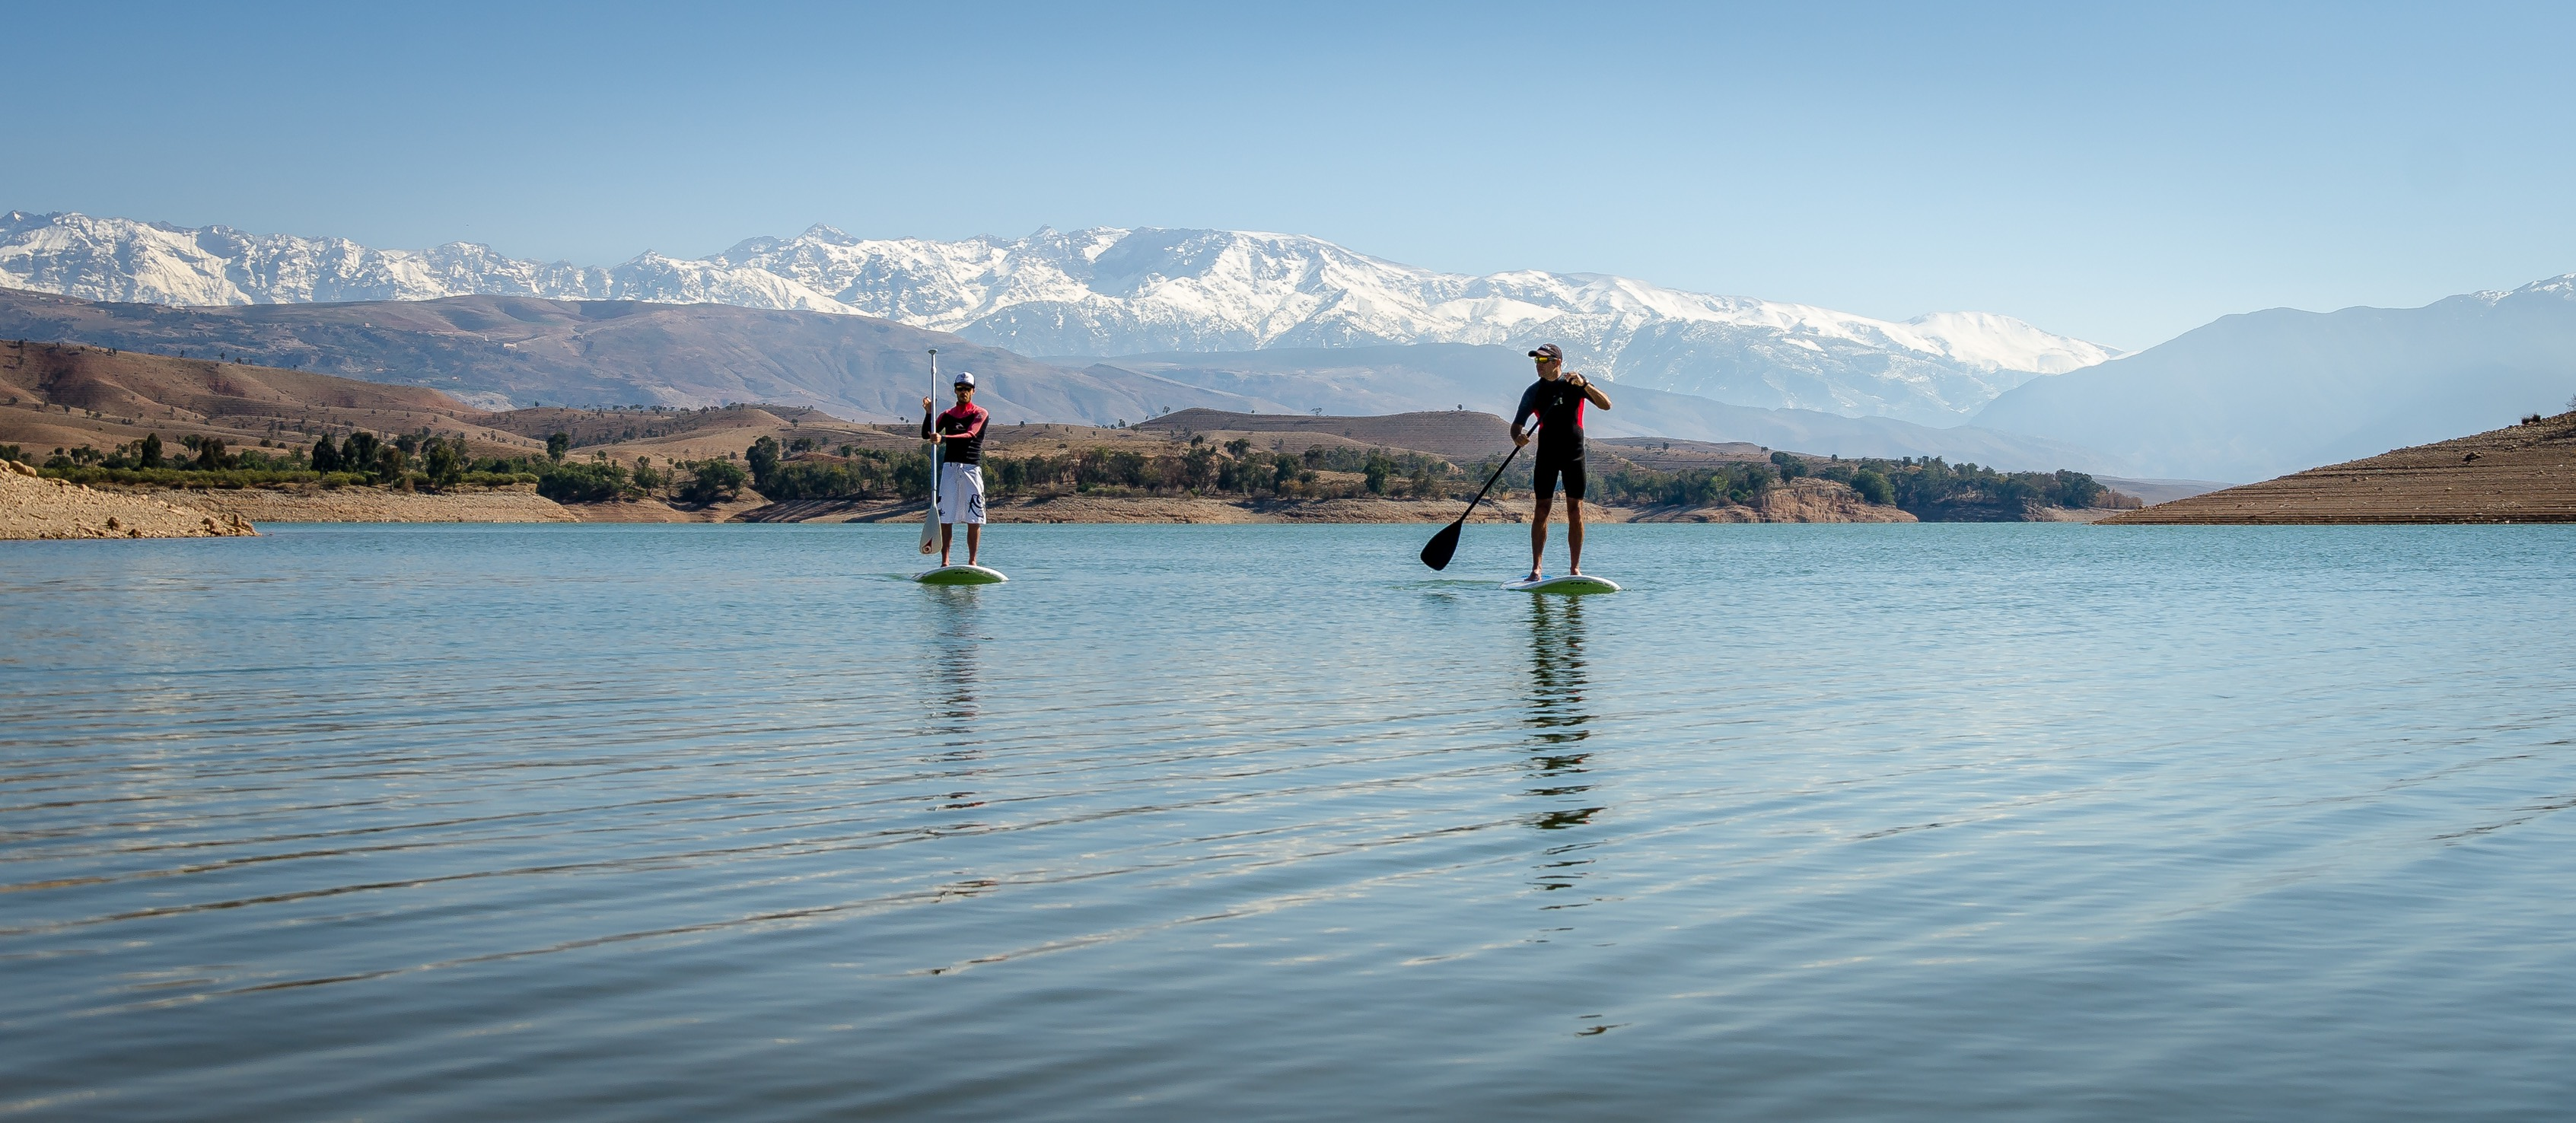 picture of two people paddle boarding with mountains in the background